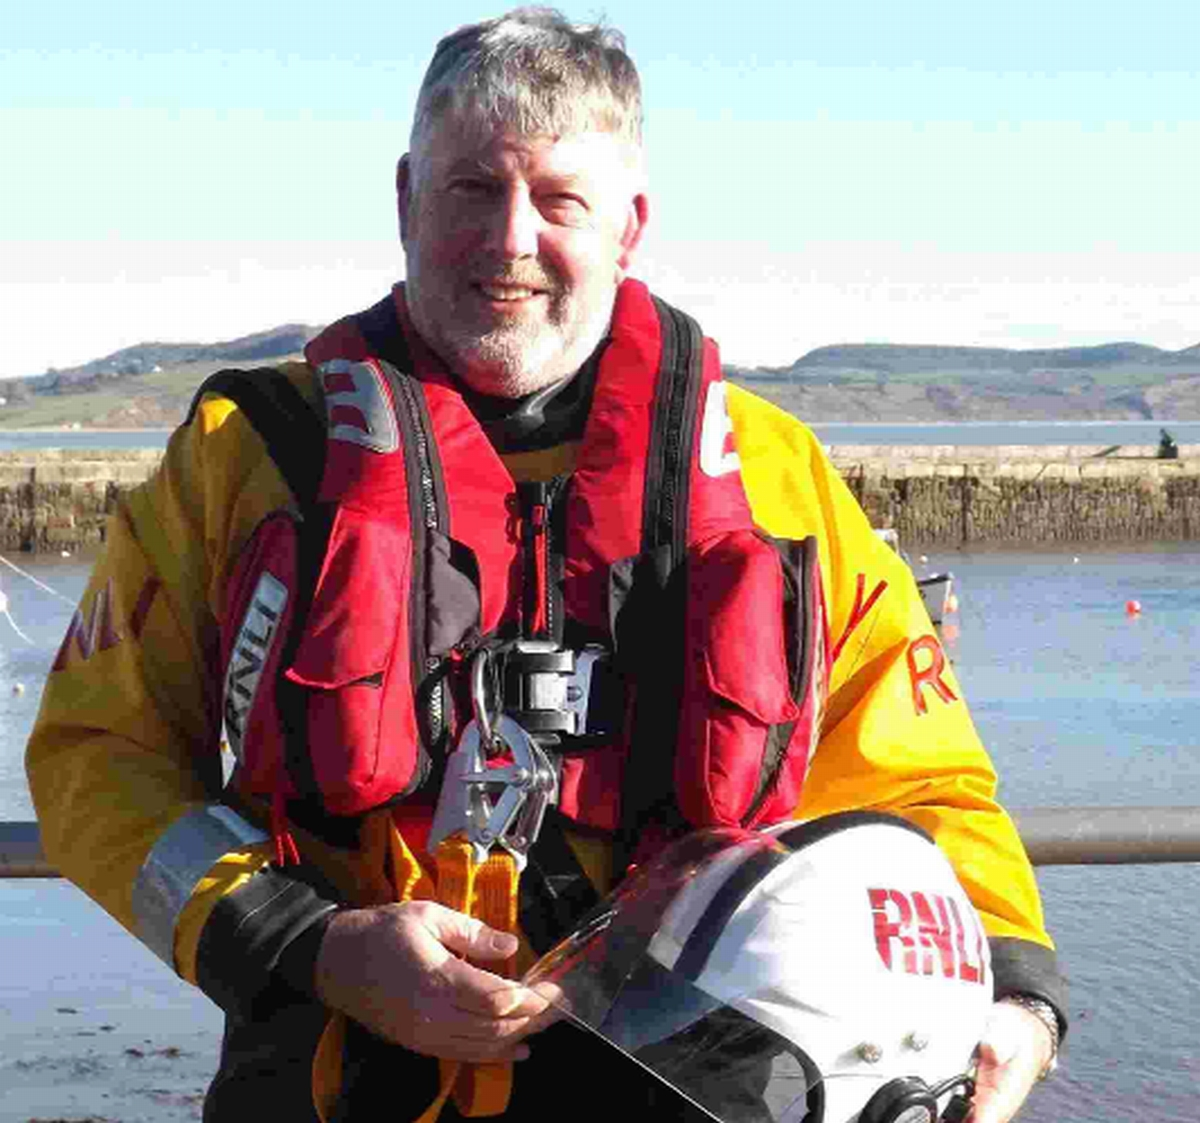 Meet new bosses of lifeboat operation